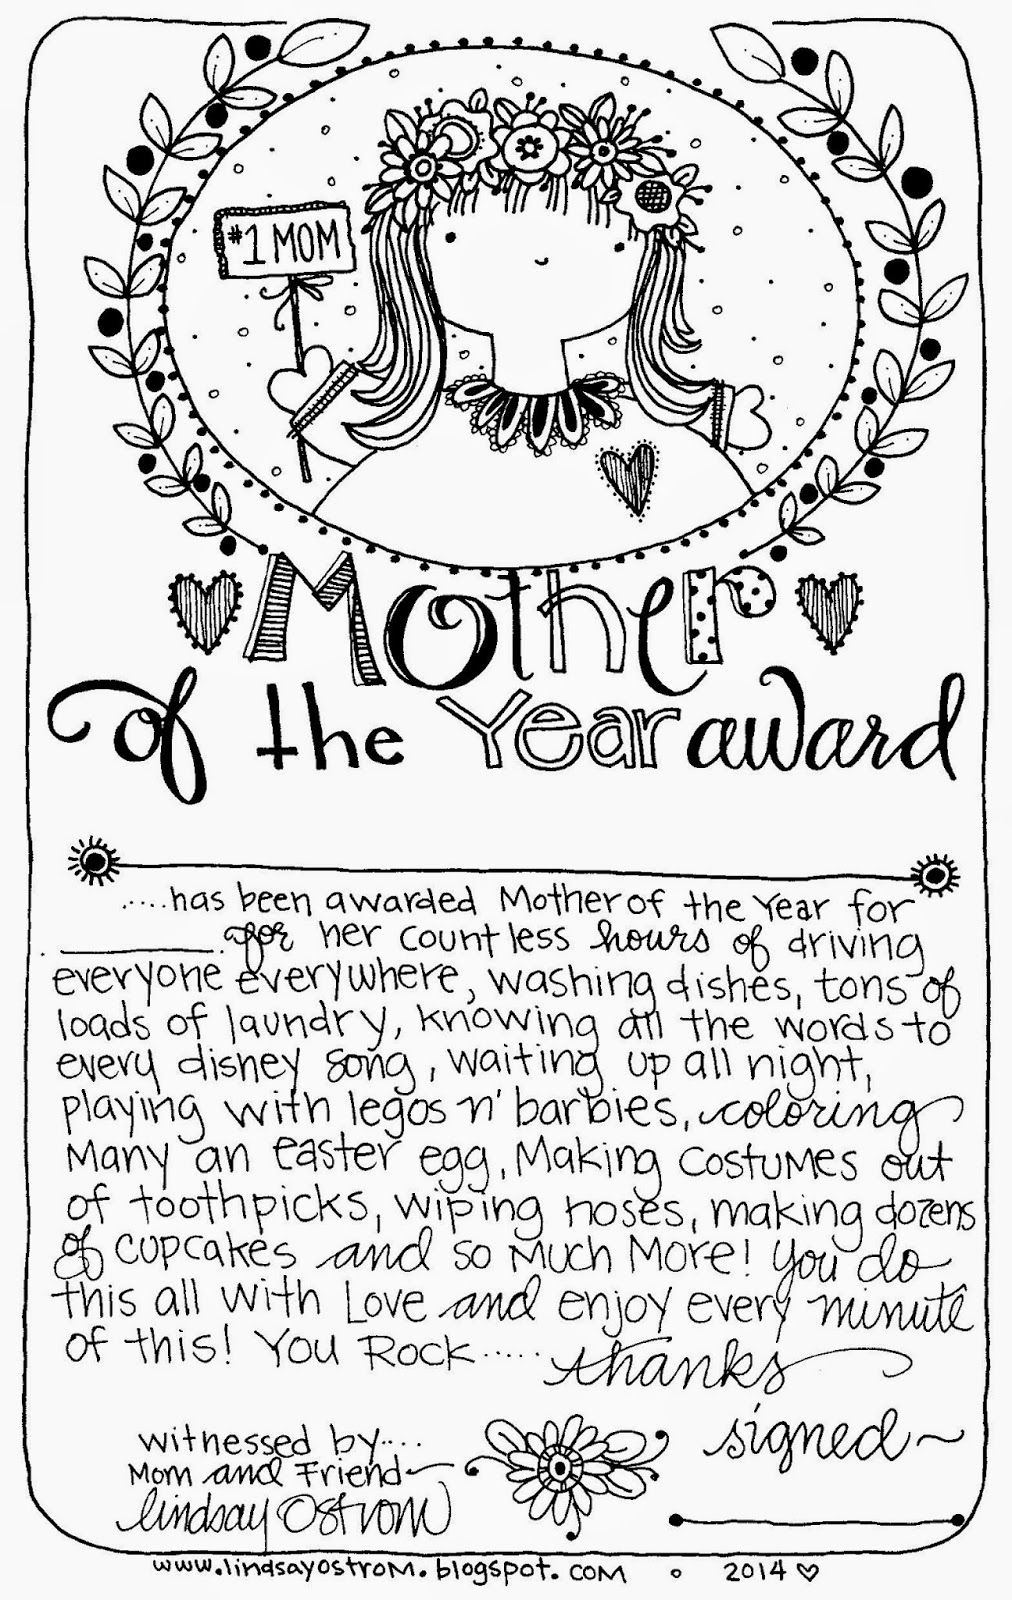 Free printable Mother of the Year Award. Use for a Mother